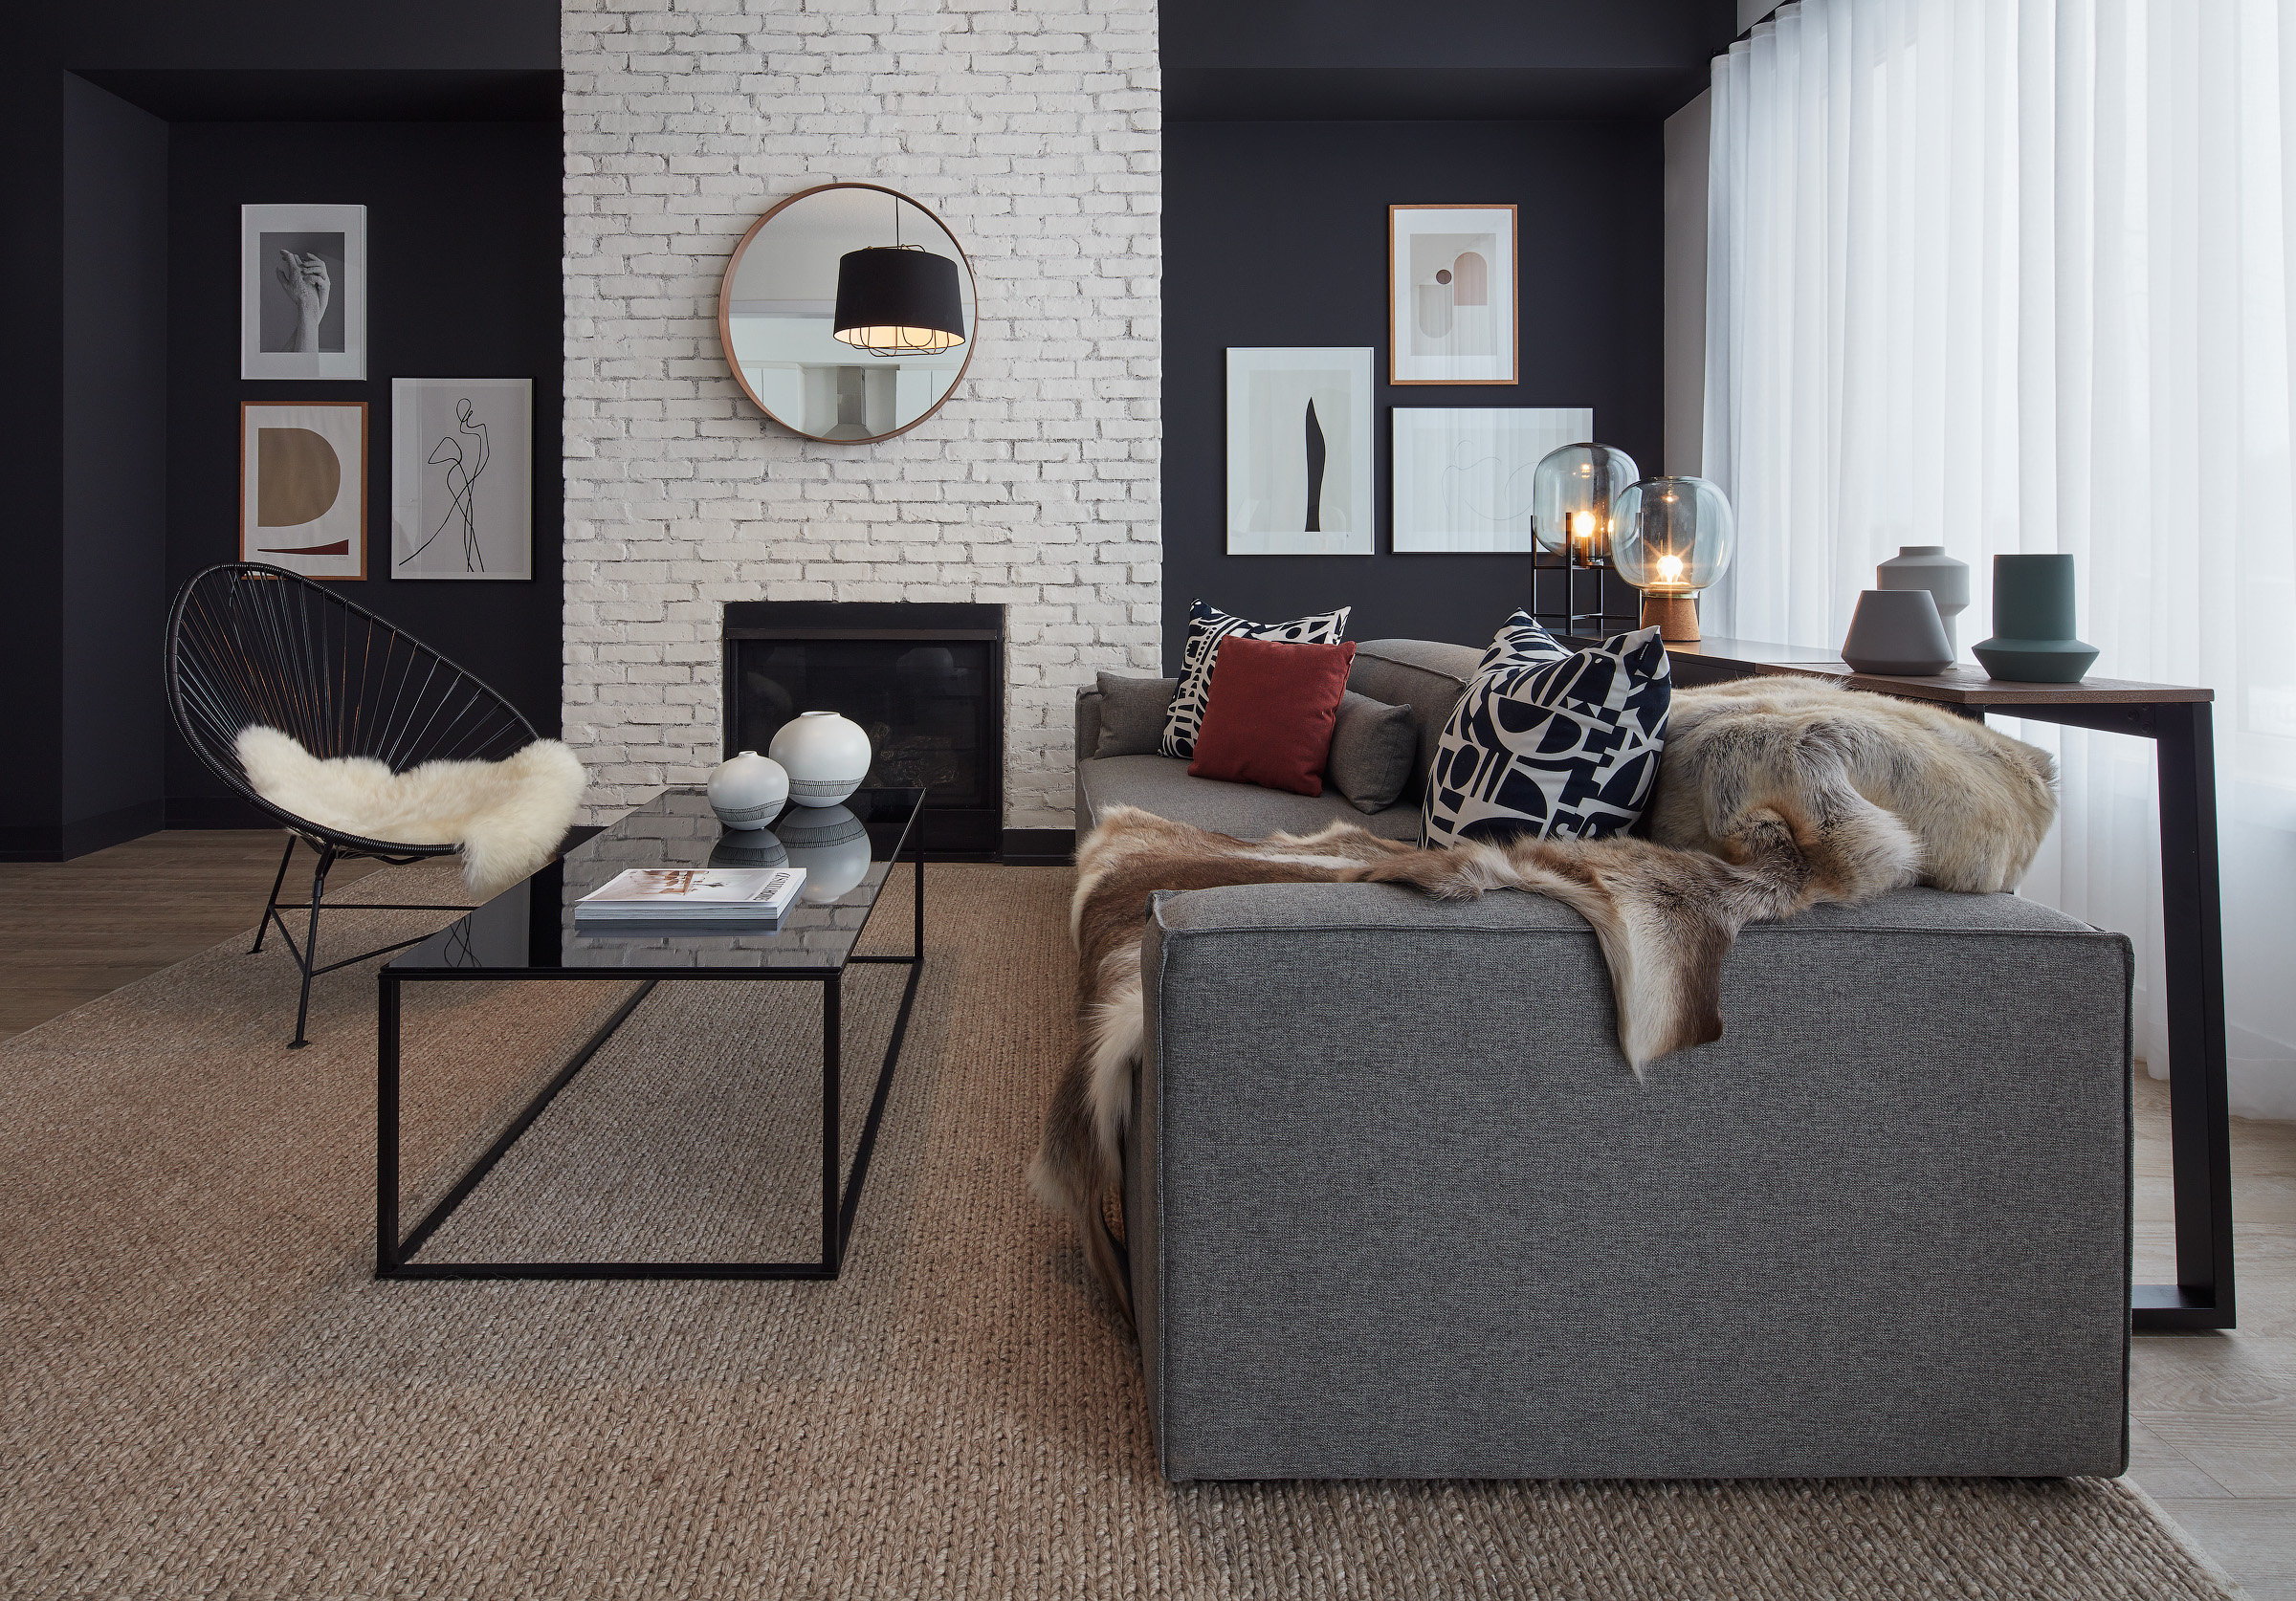 Modern Scandi living room with black and white walls, grey sofa, and fur accessories